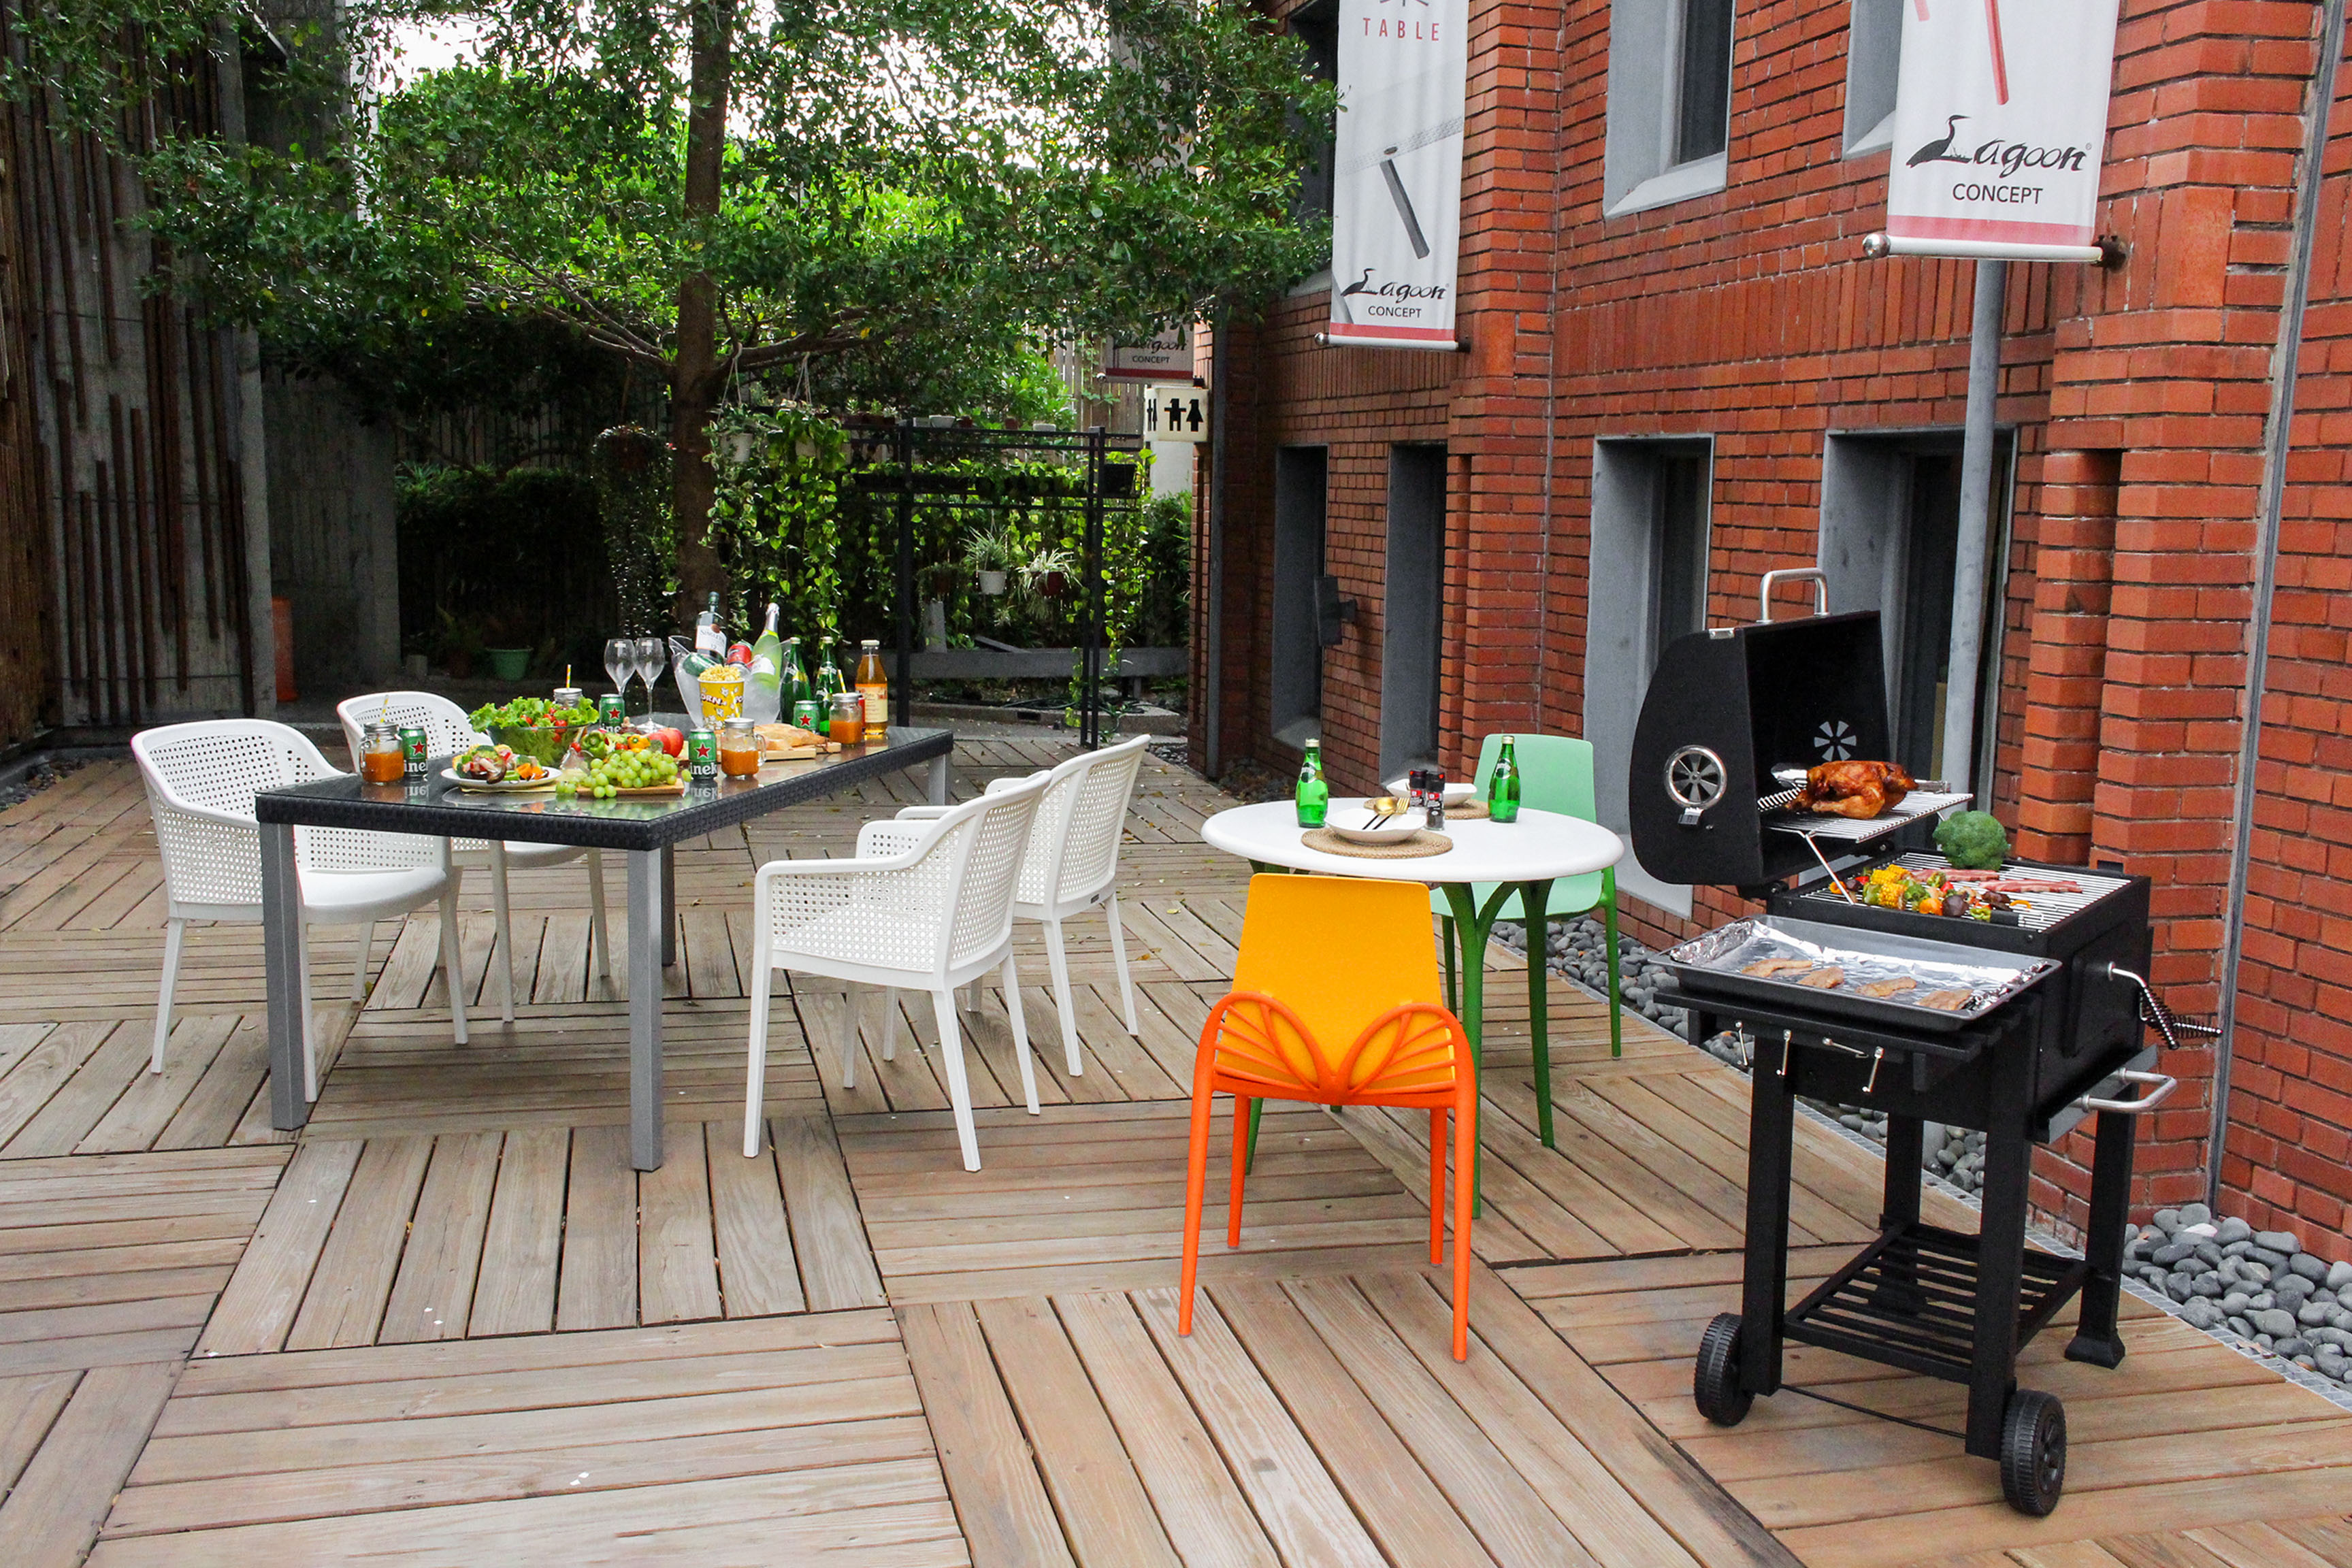 Cook, eat, laugh with friends in the backyard.